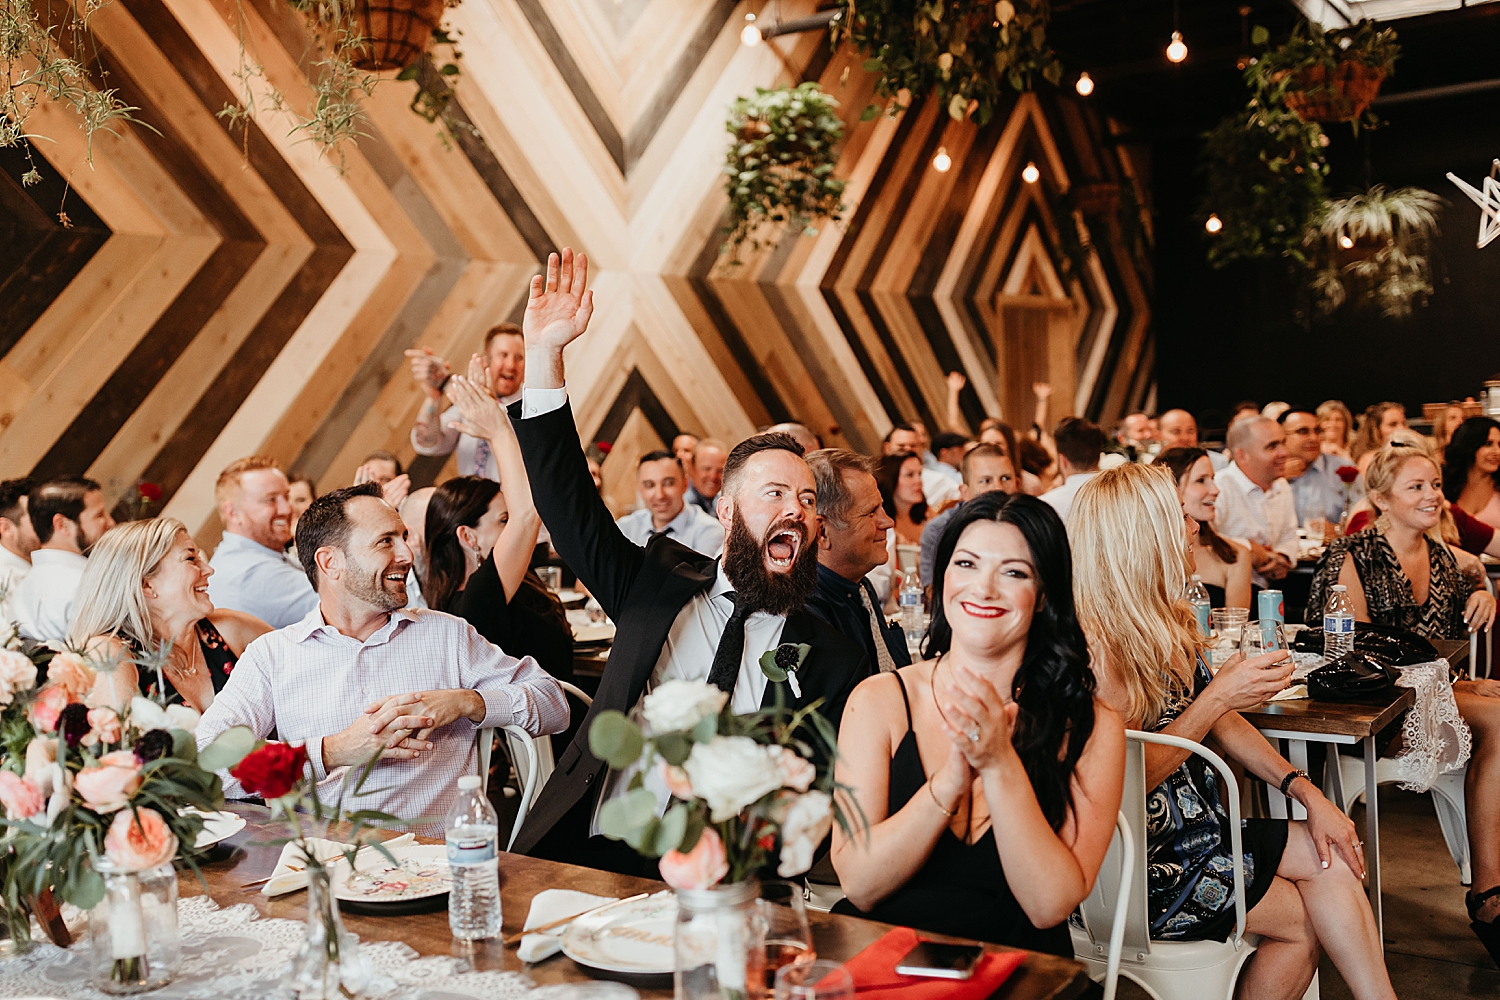 The-Wood-Shed-Booze-Brothers-Wedding-96.jpg